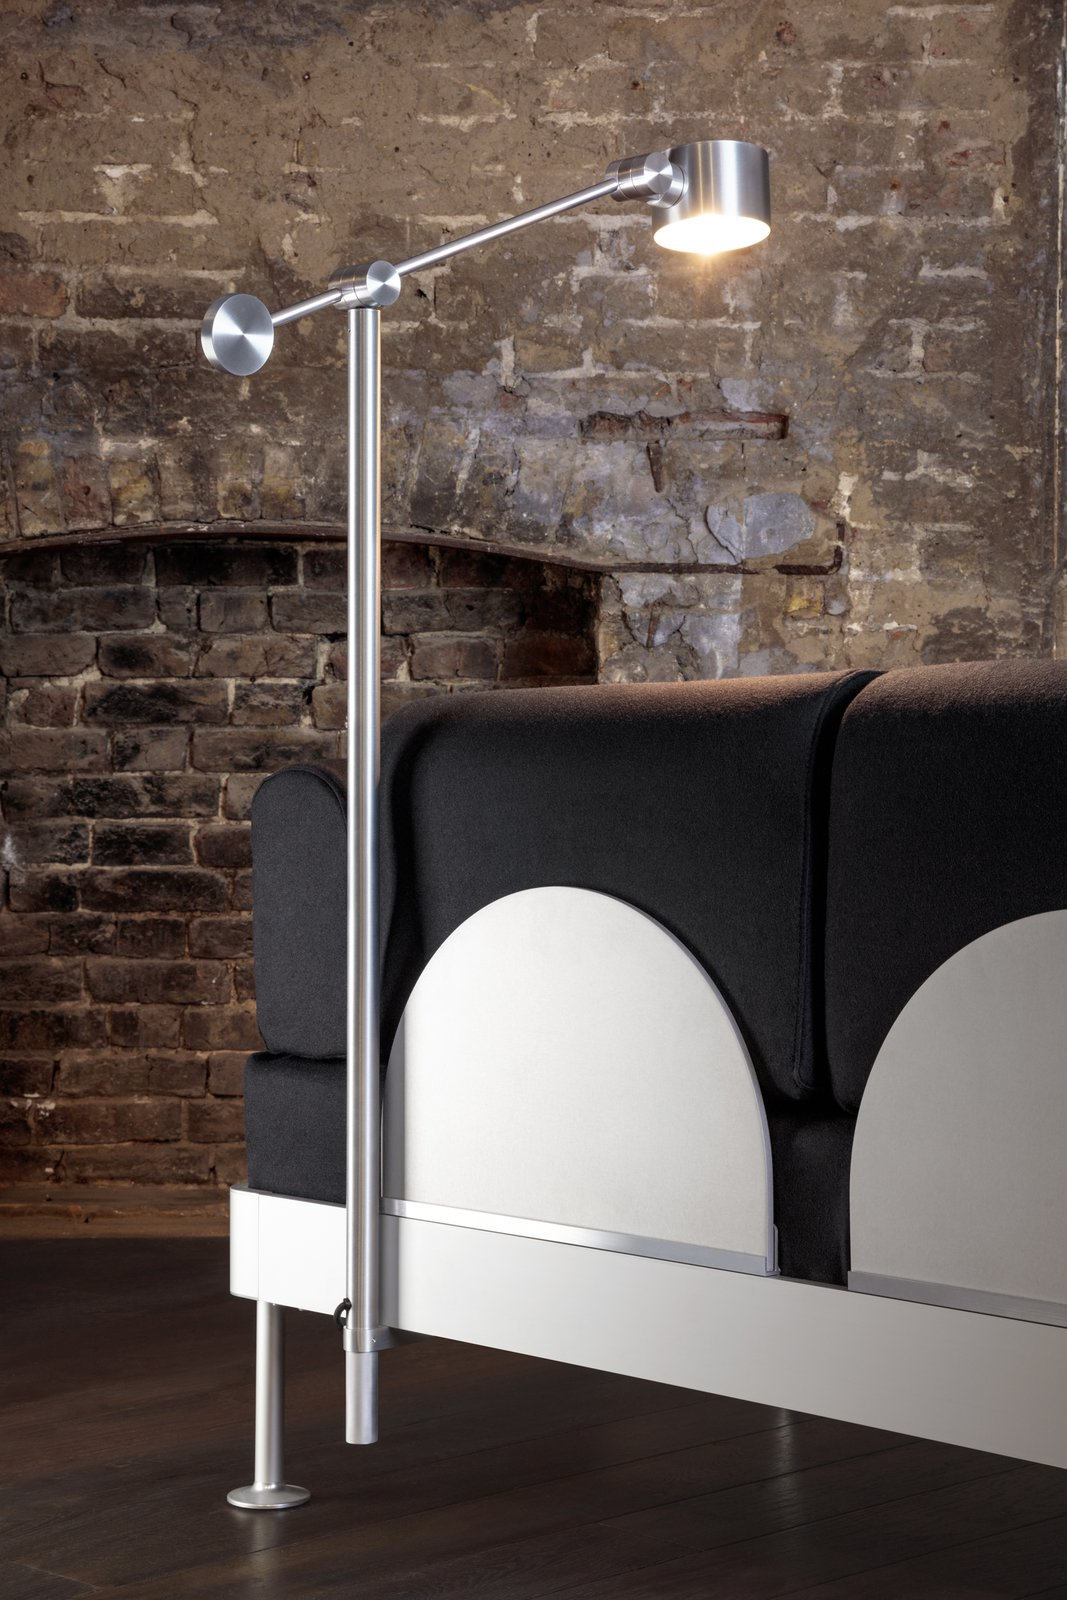 The detachable BOOM light takes its inspiration from machinist lamps and back panels made of polished and anodised aluminum provide back support.